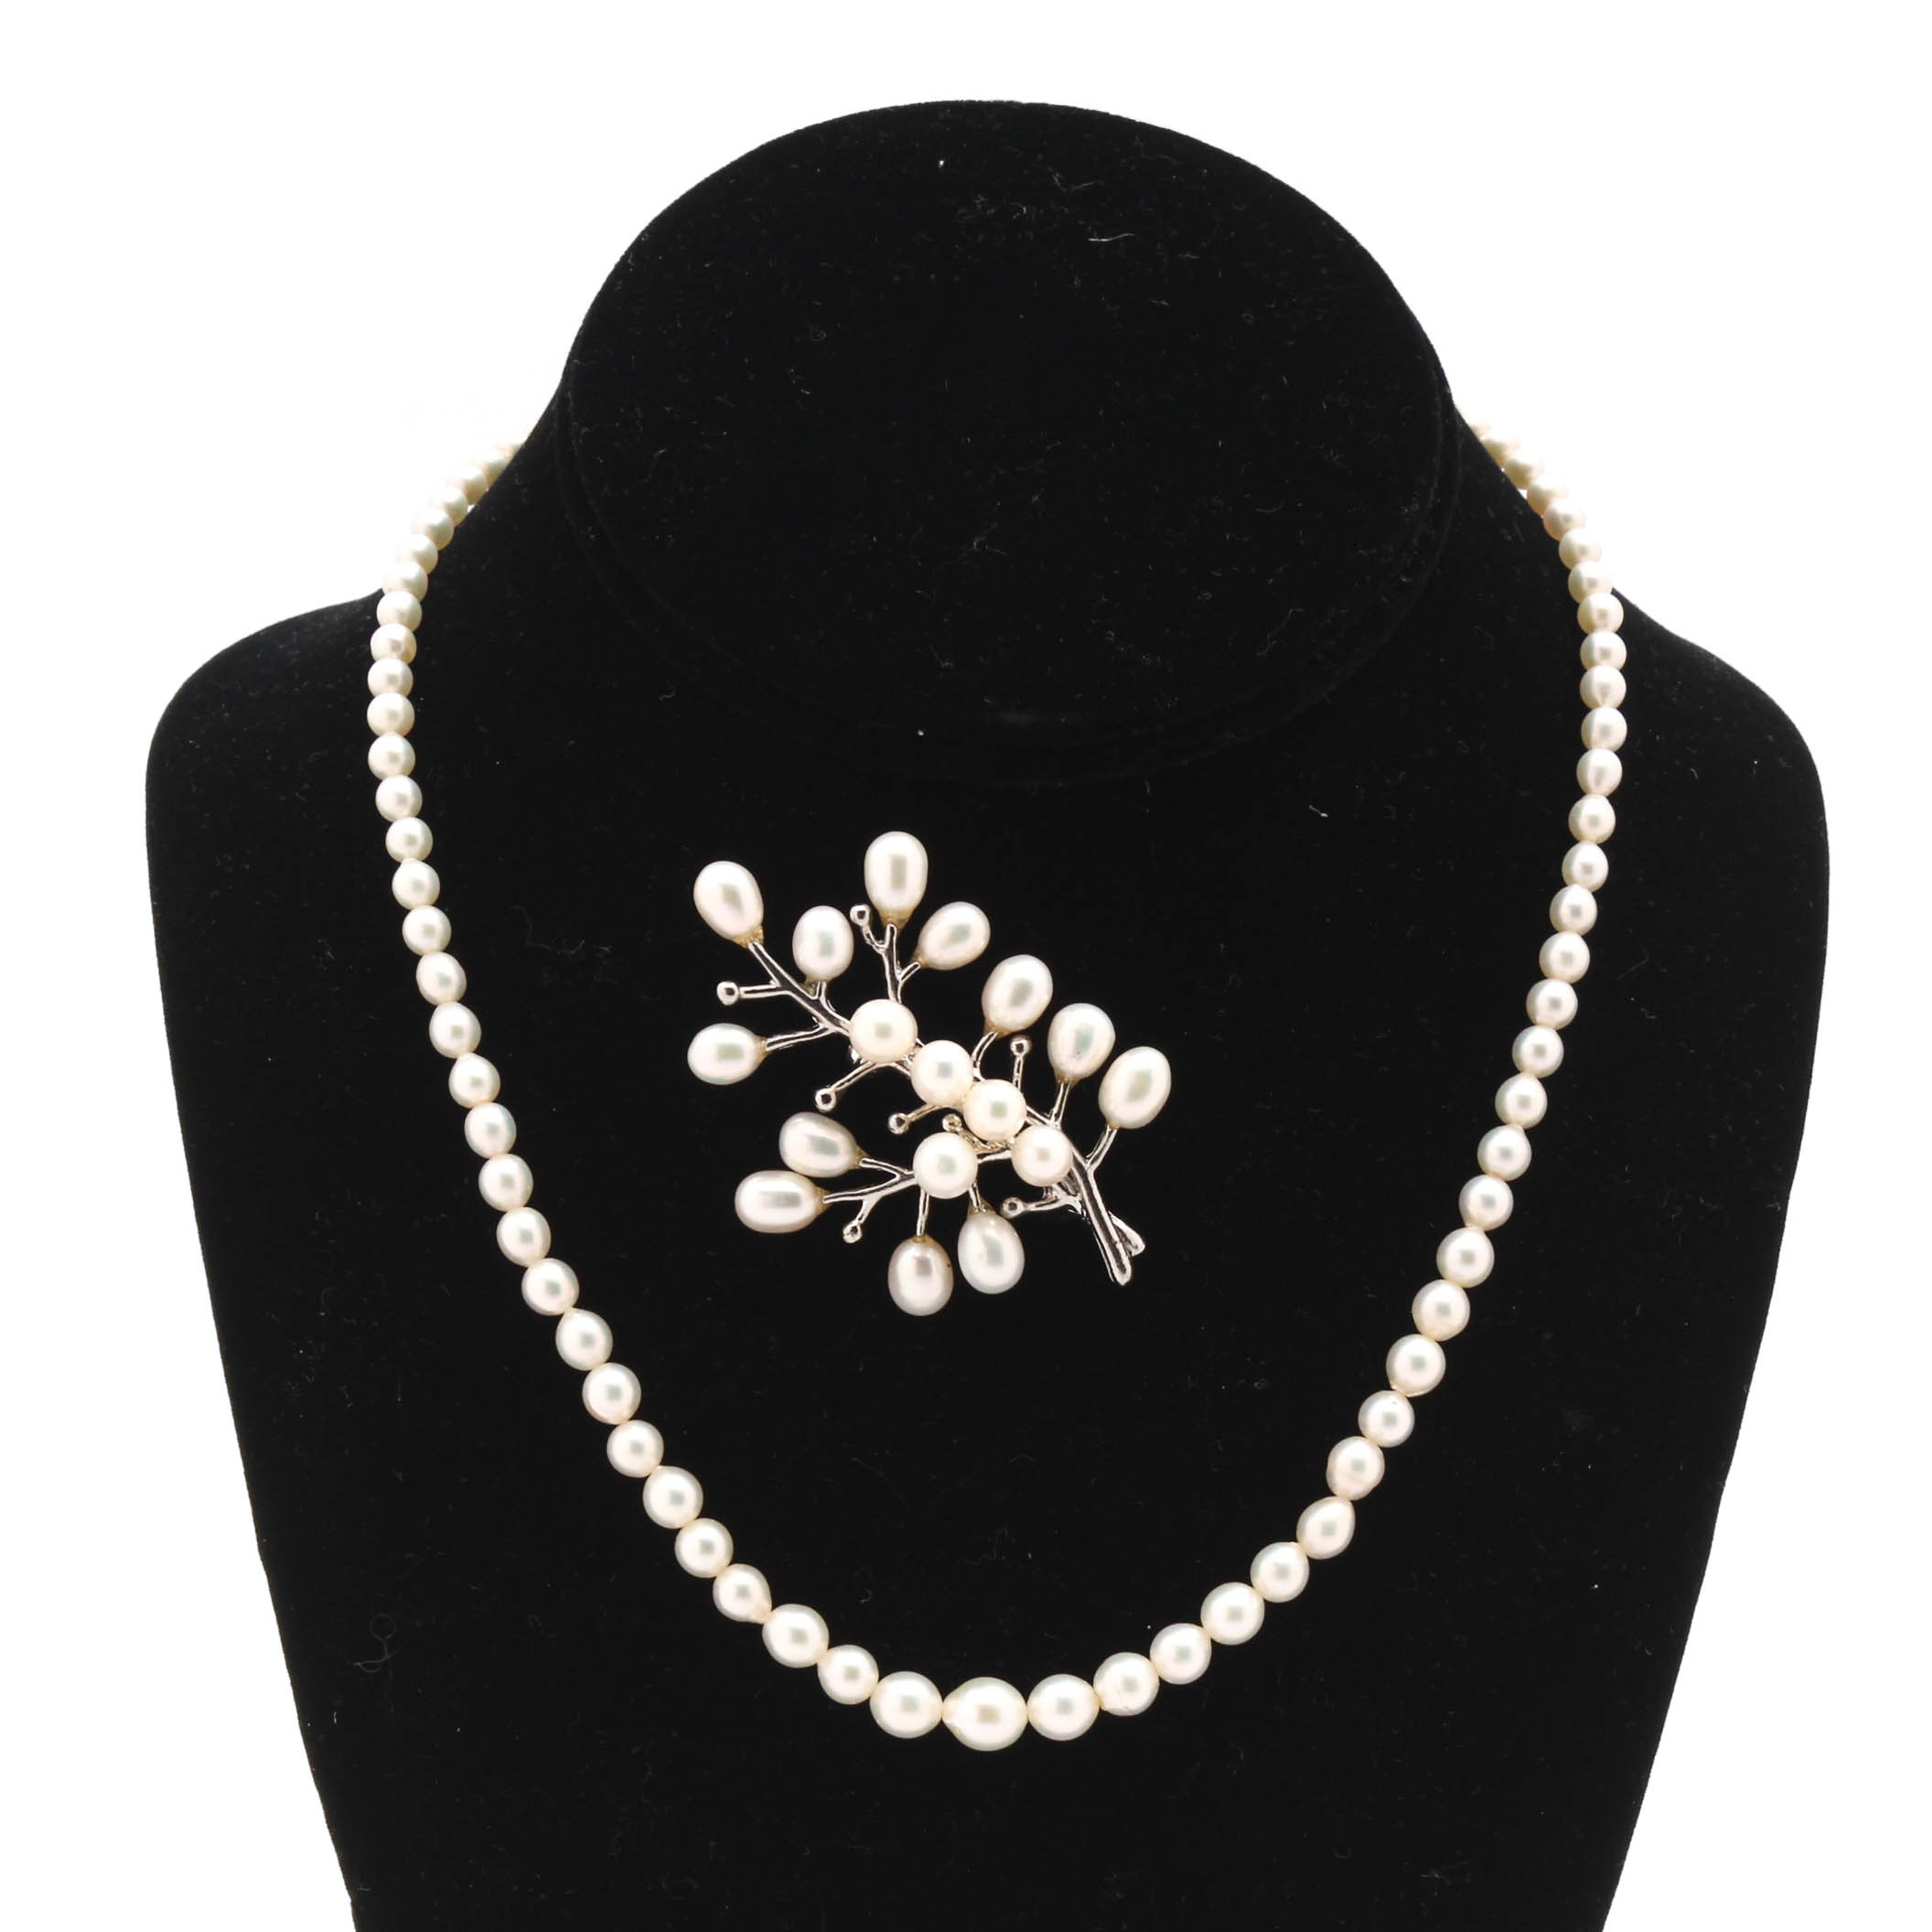 Cultured Freshwater Pearl Necklace and Brooch